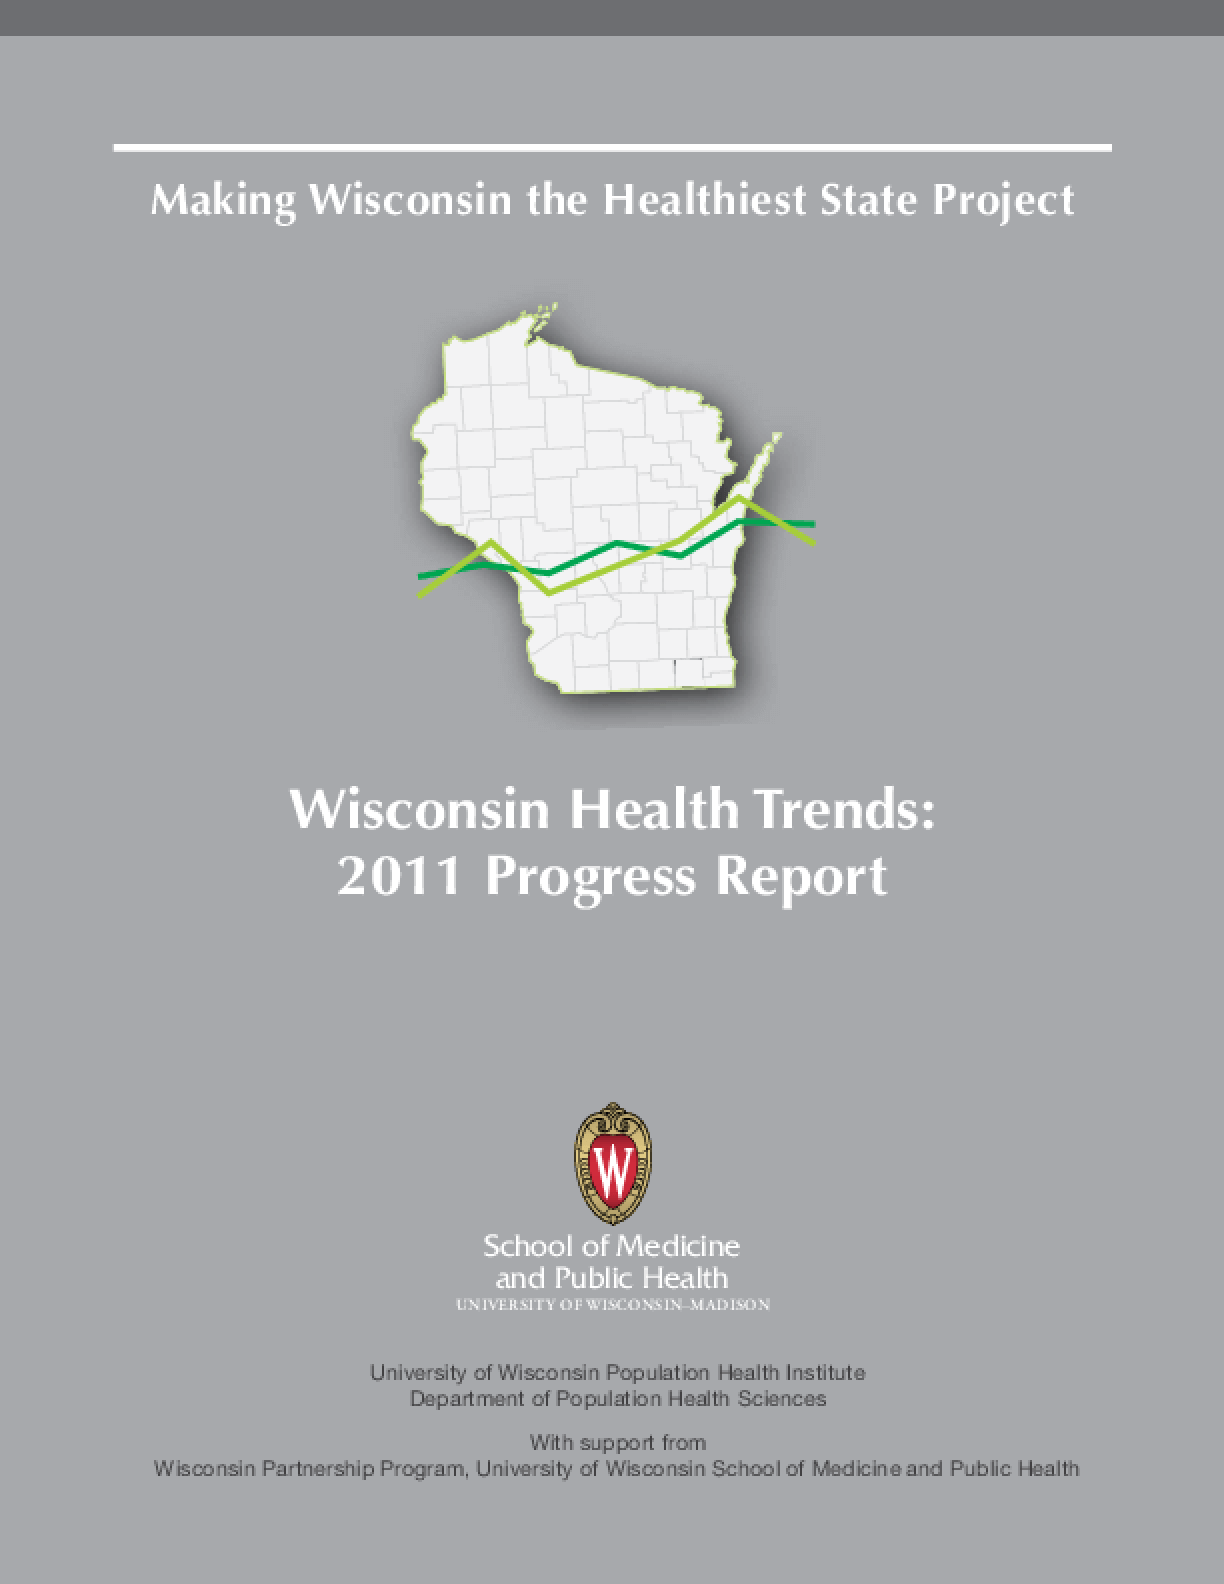 Making Wisconsin the Healthiest State Project, Wisconsin Health Trends: 2011 Progress Report